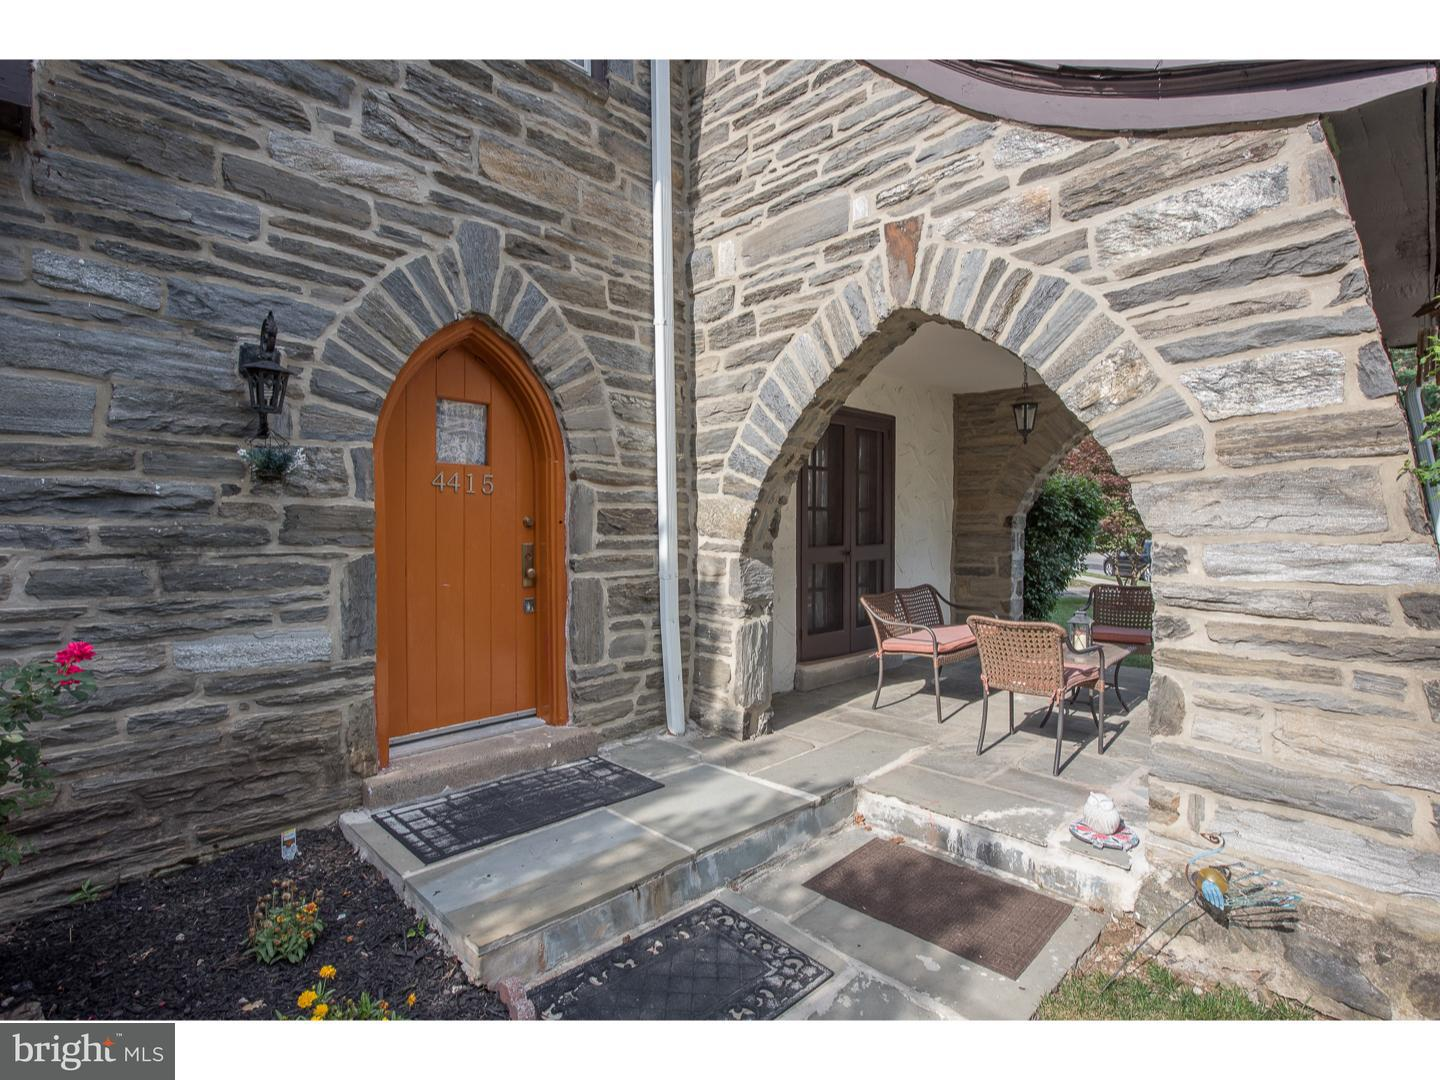 4415 BOND AVE, DREXEL HILL - Listed at $269,900, DREXEL HILL